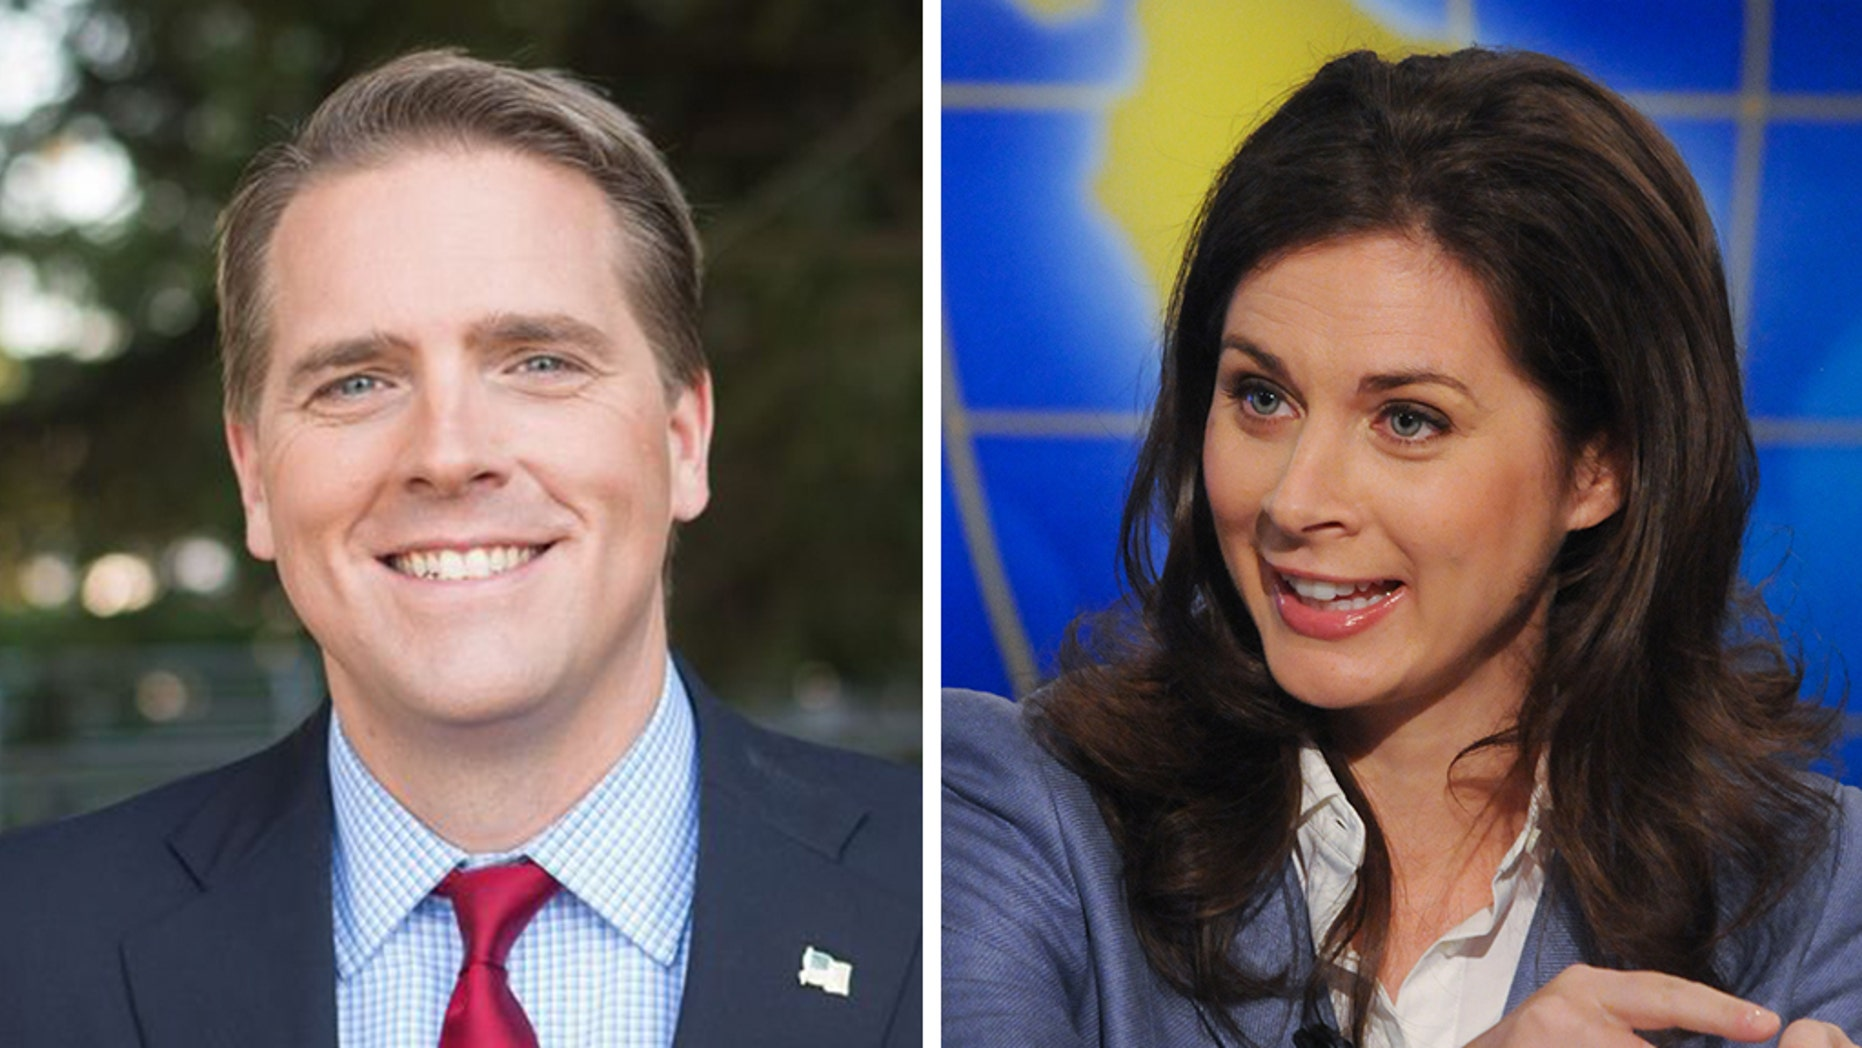 CNN anchor Erin Burnett got into a tense back-and-forth with conservative commentator Scott Jennings.